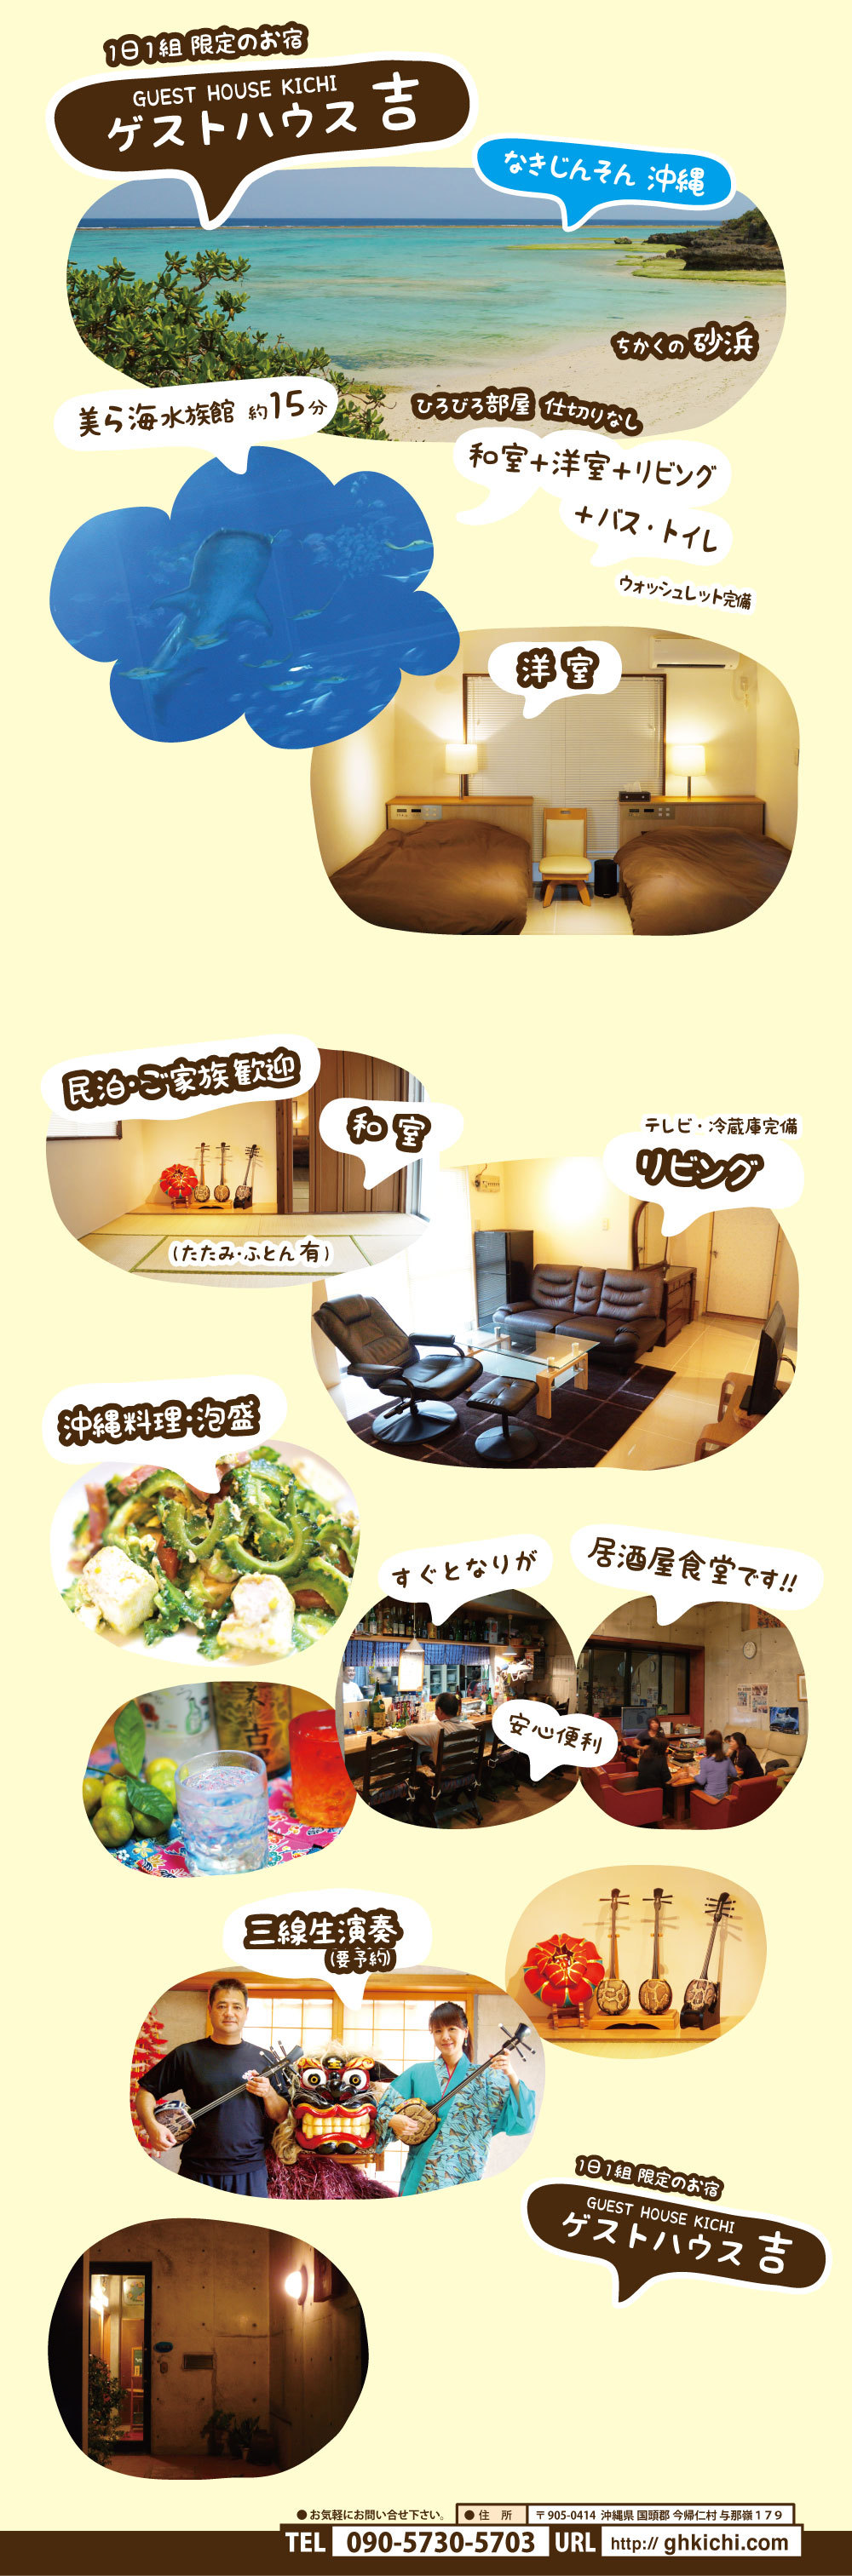 guesthouse-Kichi-2015-A4-omote-5-web-3-price.png